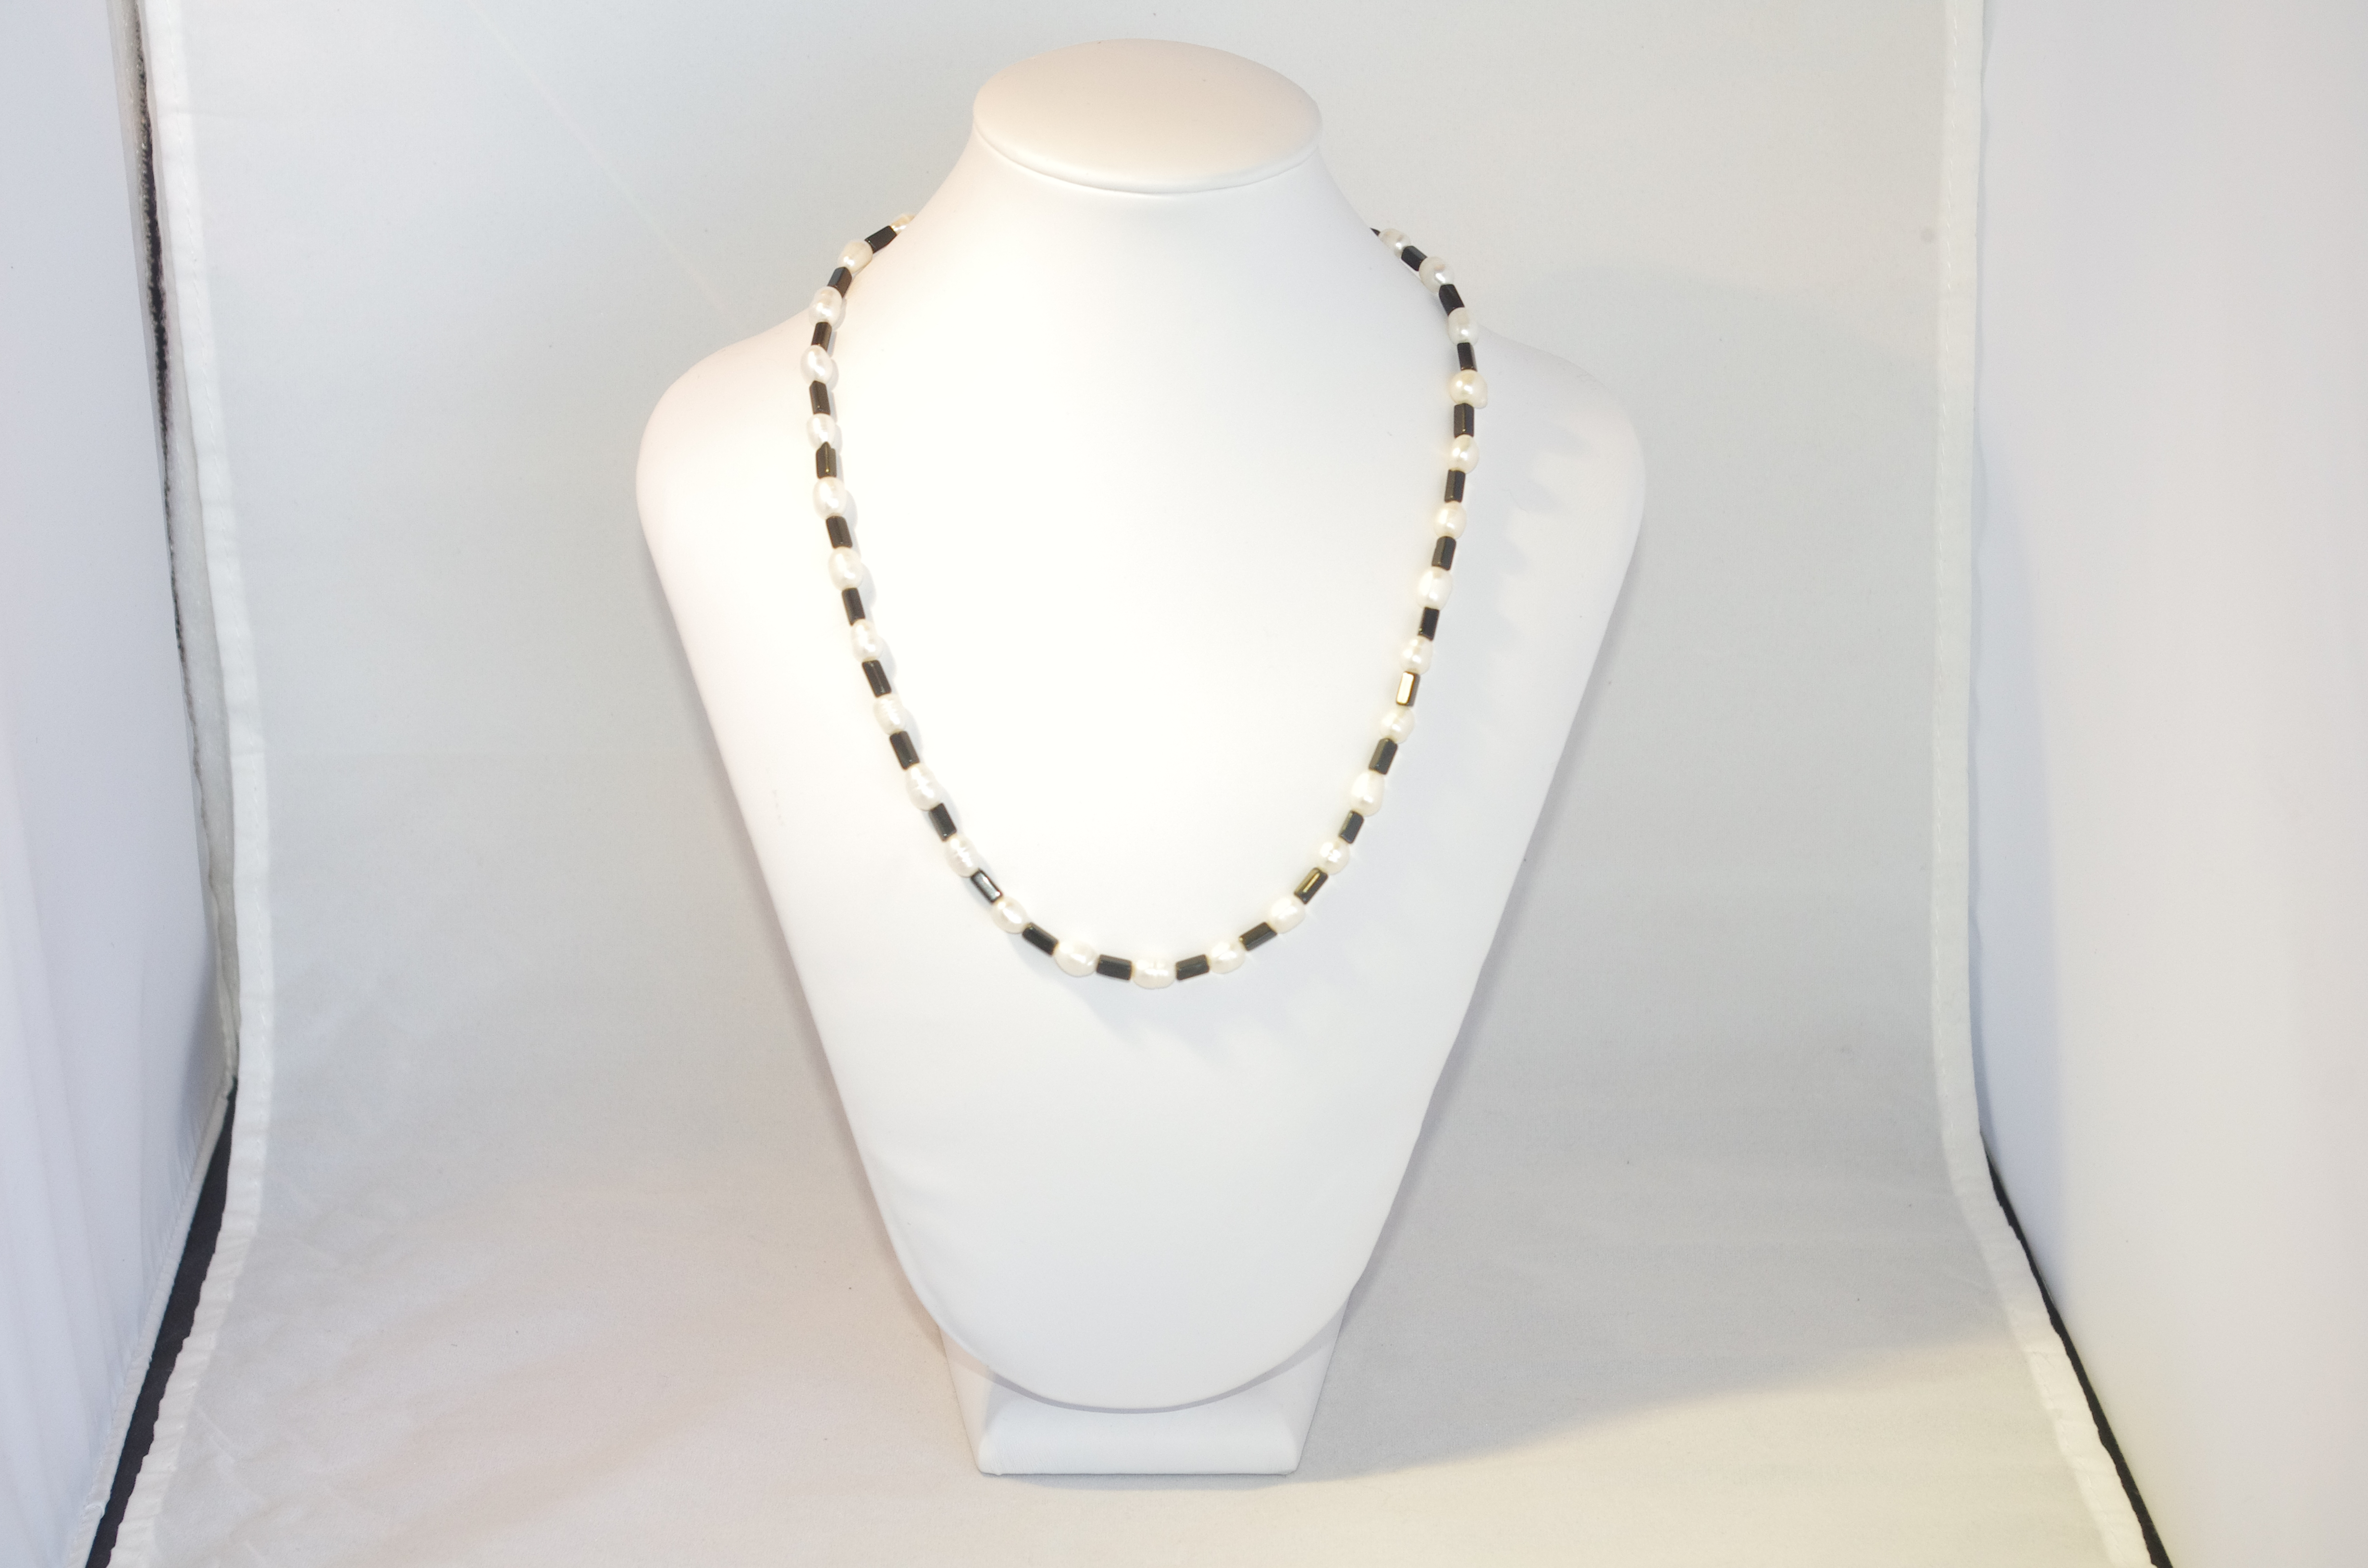 Onyx rectangles and freshwater pearls